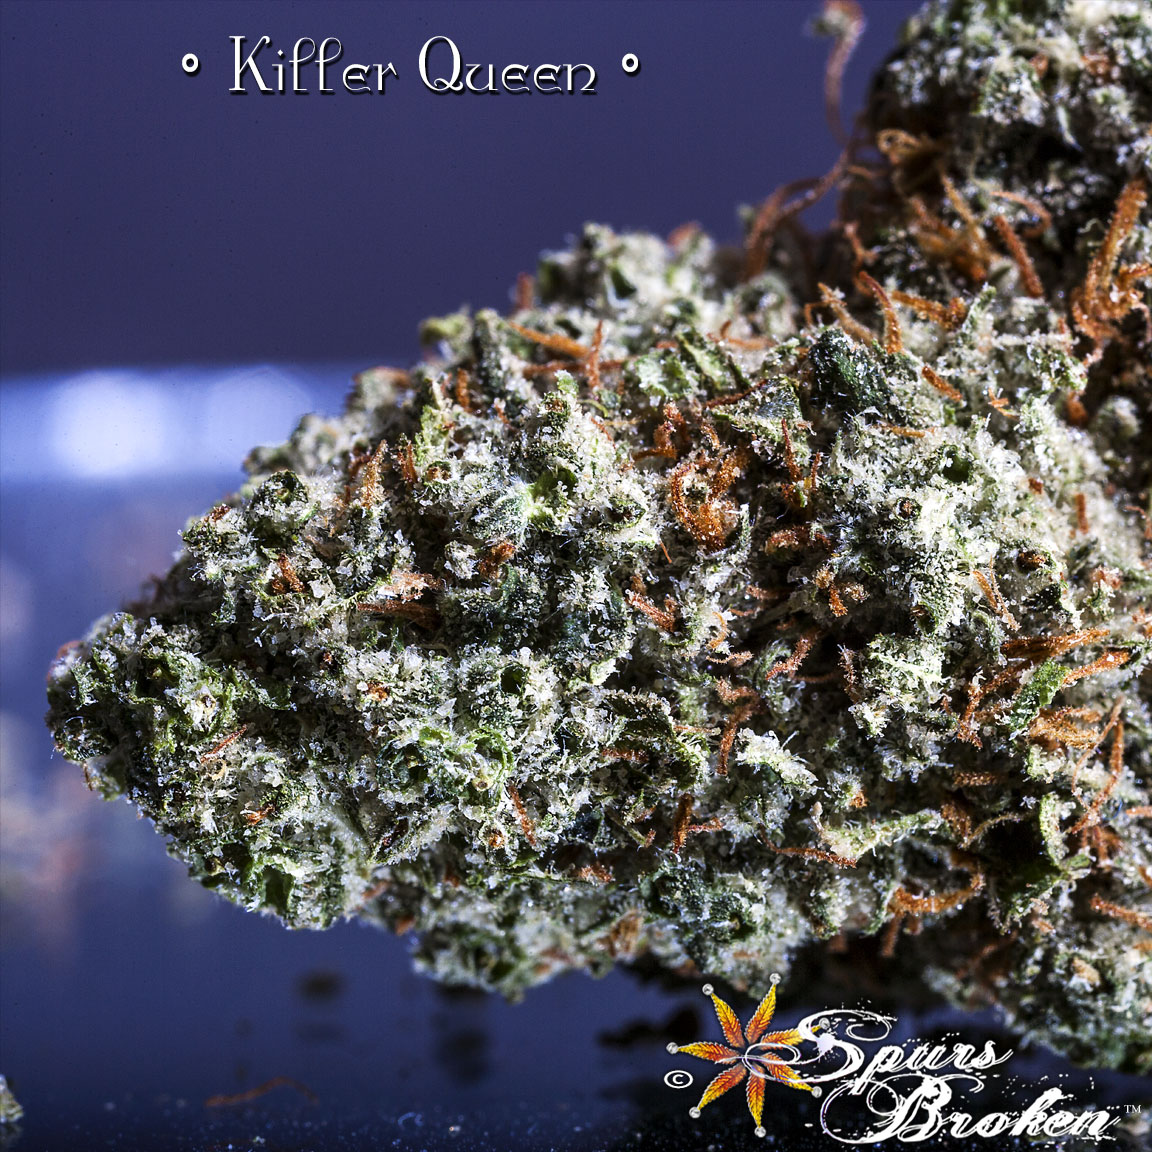 Killer Queen - Cannabis Macro Photography by Spurs Broken (Robert R. Sanders)